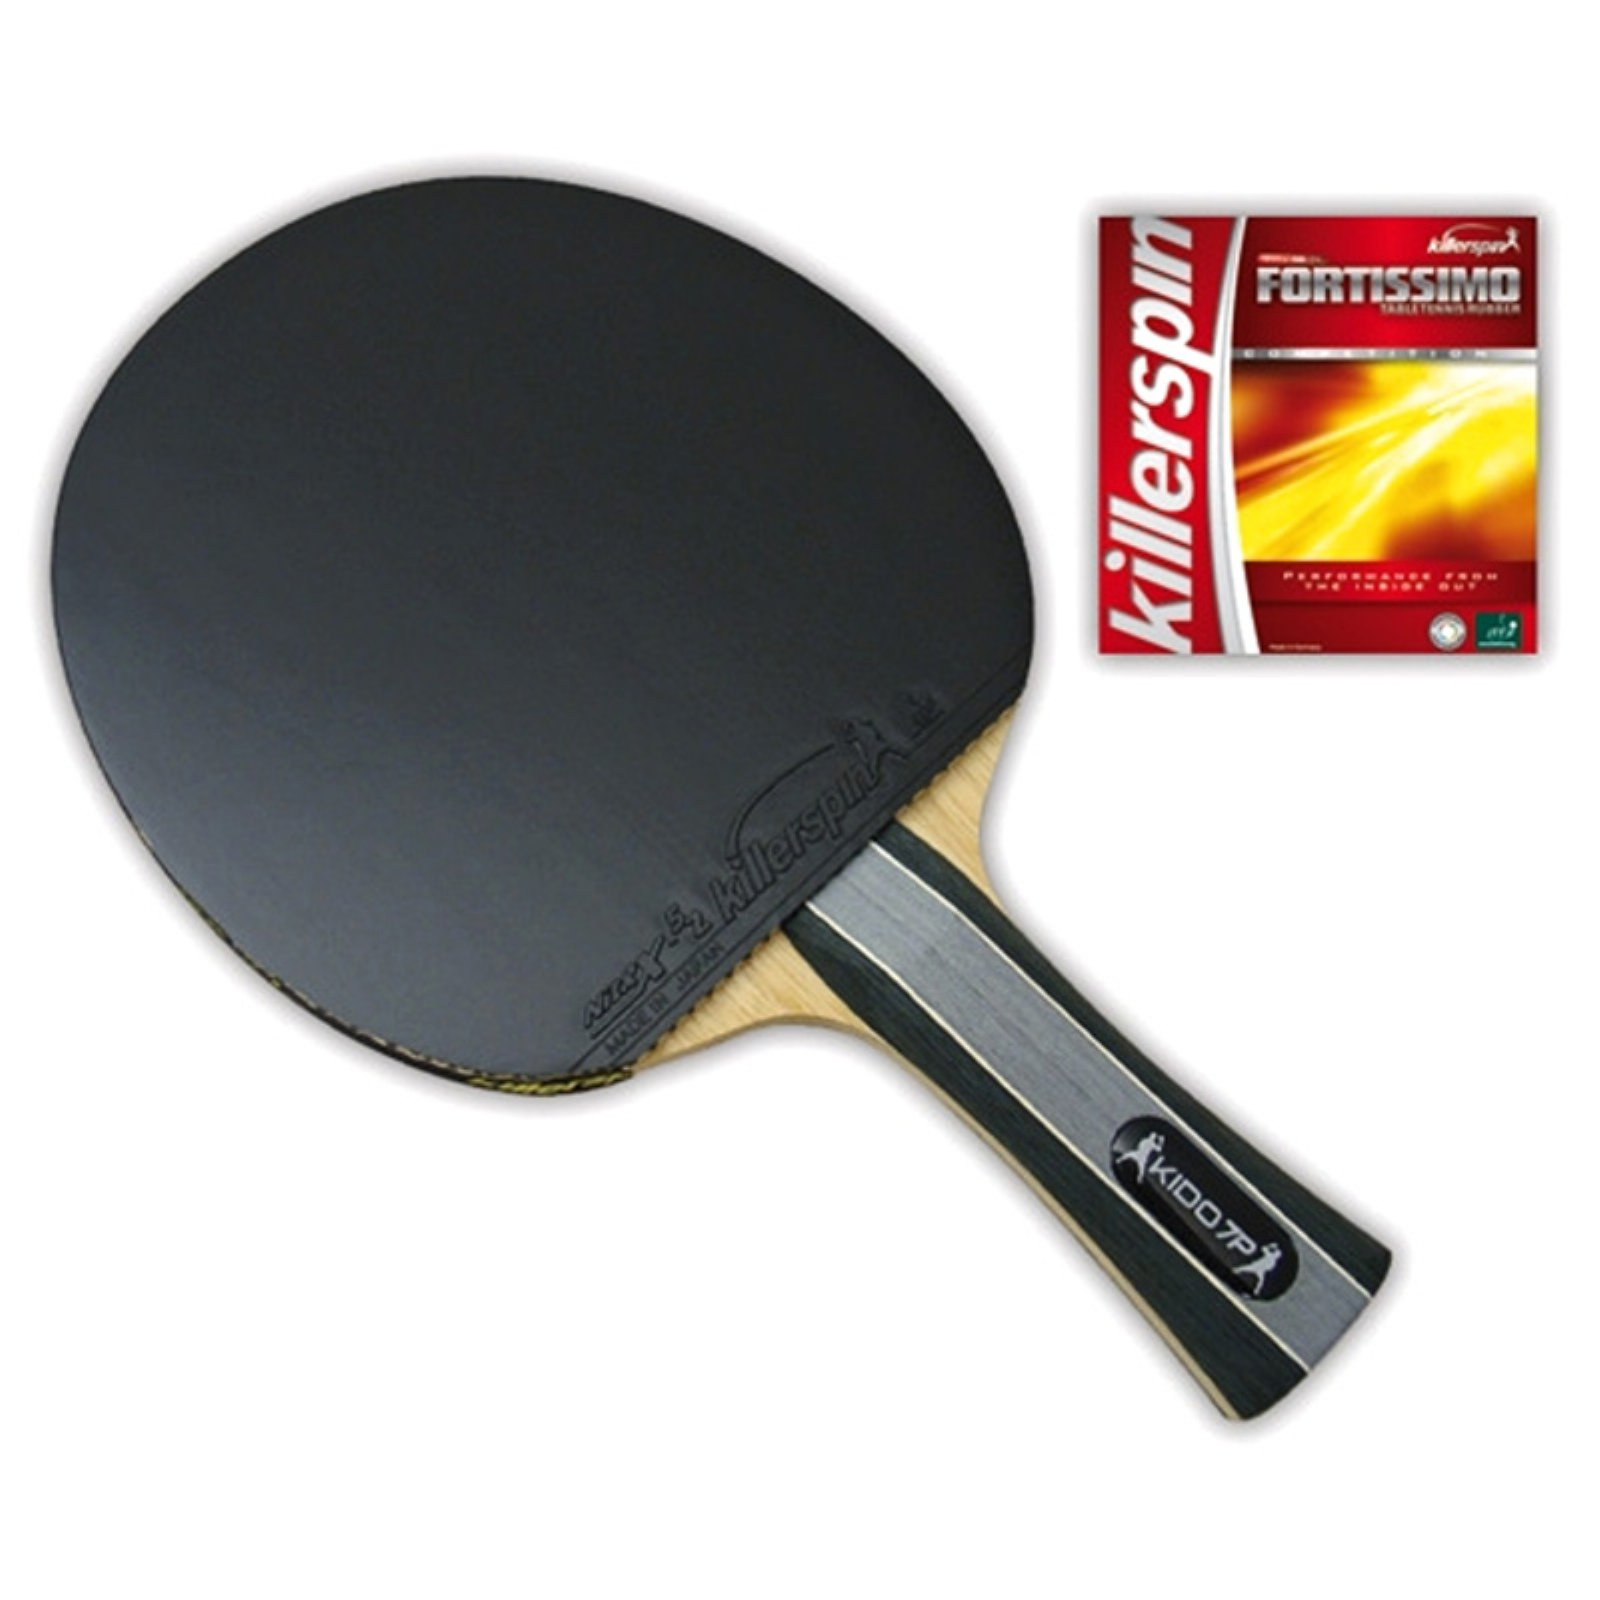 Killerspin Kido 7P Premium Ping Pong Paddle – Professional Table Tennis Racket| 7-Ply Wood Blade, Fortissimo Competition Rubbers| Straight Handle Ping Pong Bat, ITTF Tournament Approved| Black/Red